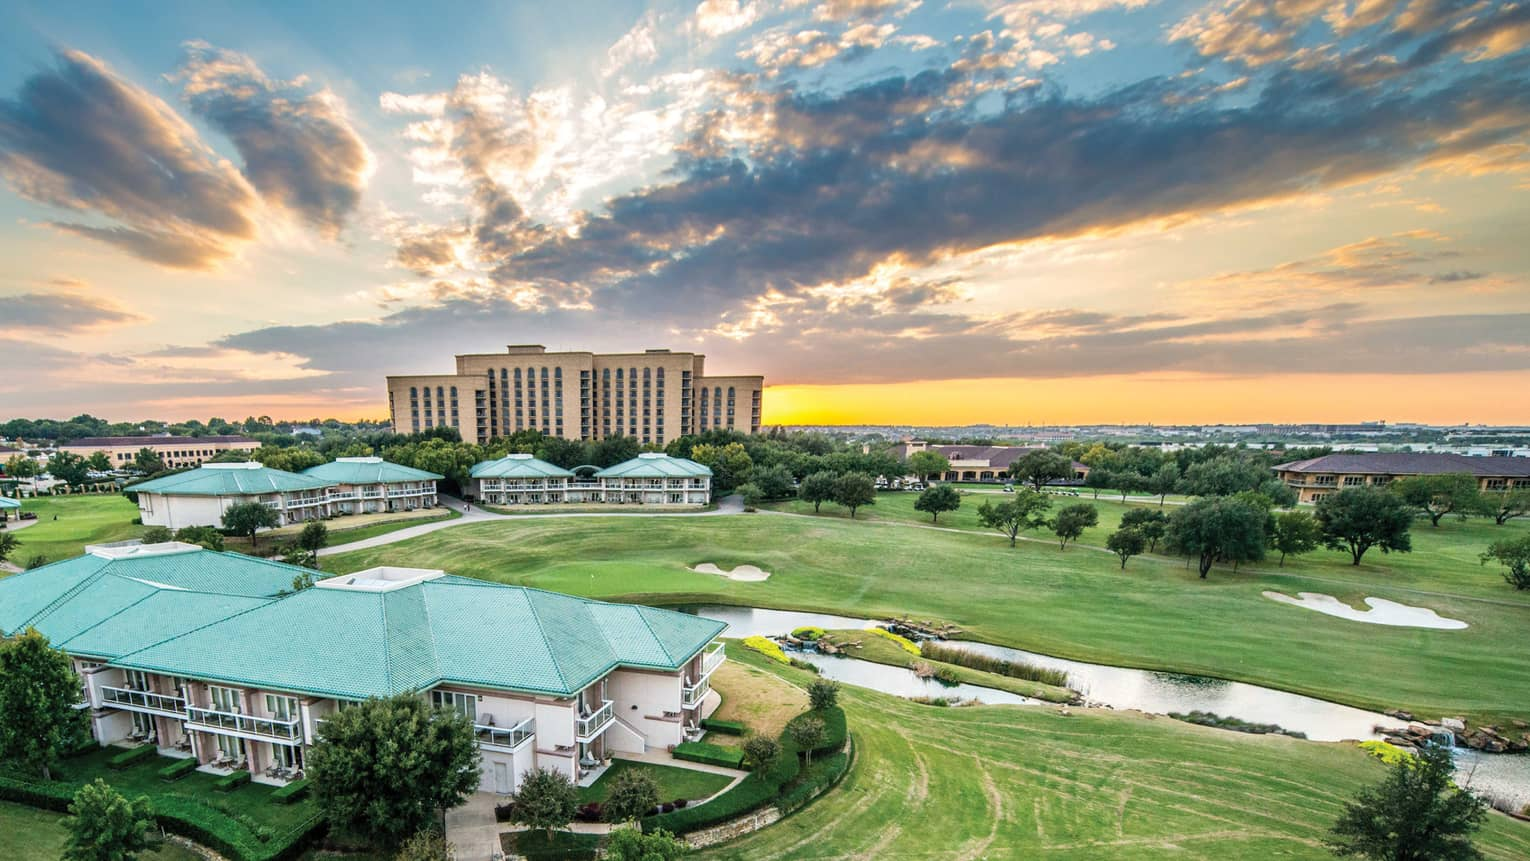 Aerial view of Four Seasons Hotel Dallas, Texas buildings, golf course at sunset